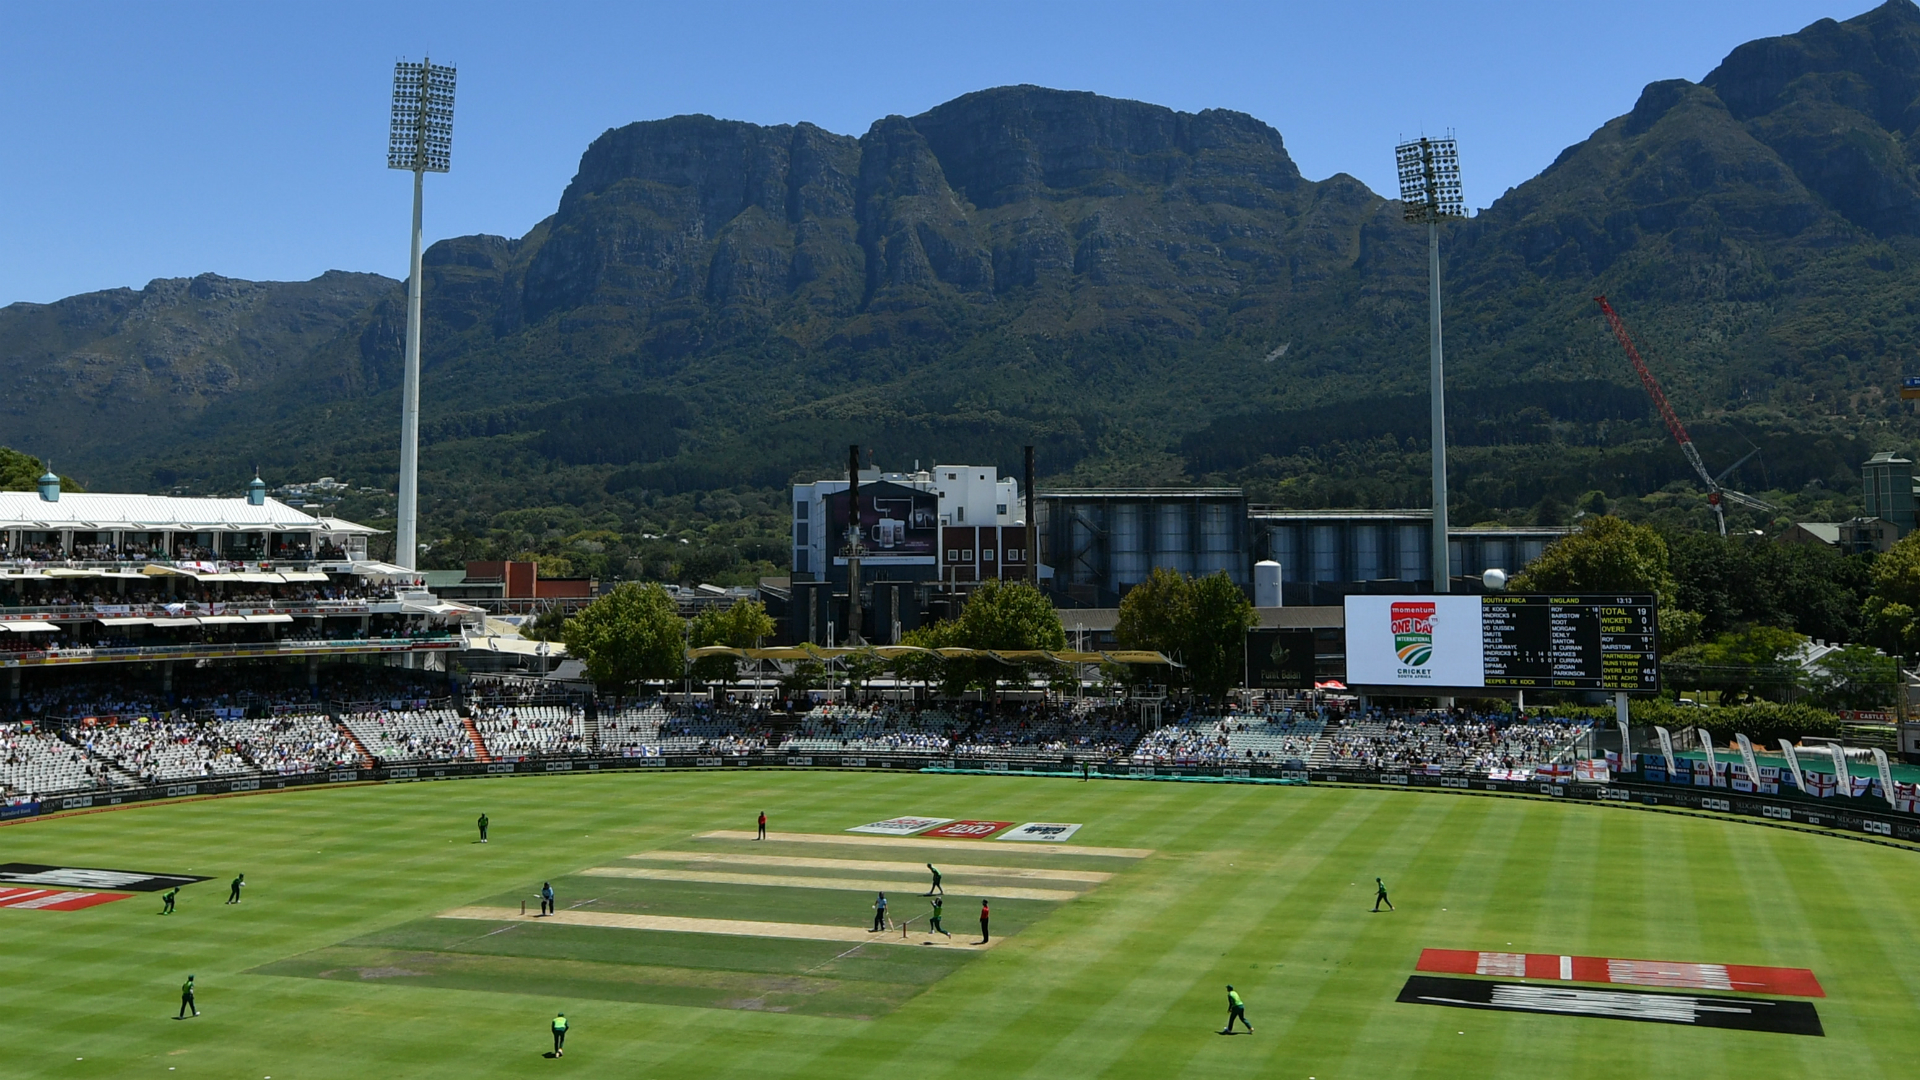 Coronavirus: Cricket suspended in South Africa for 60 days